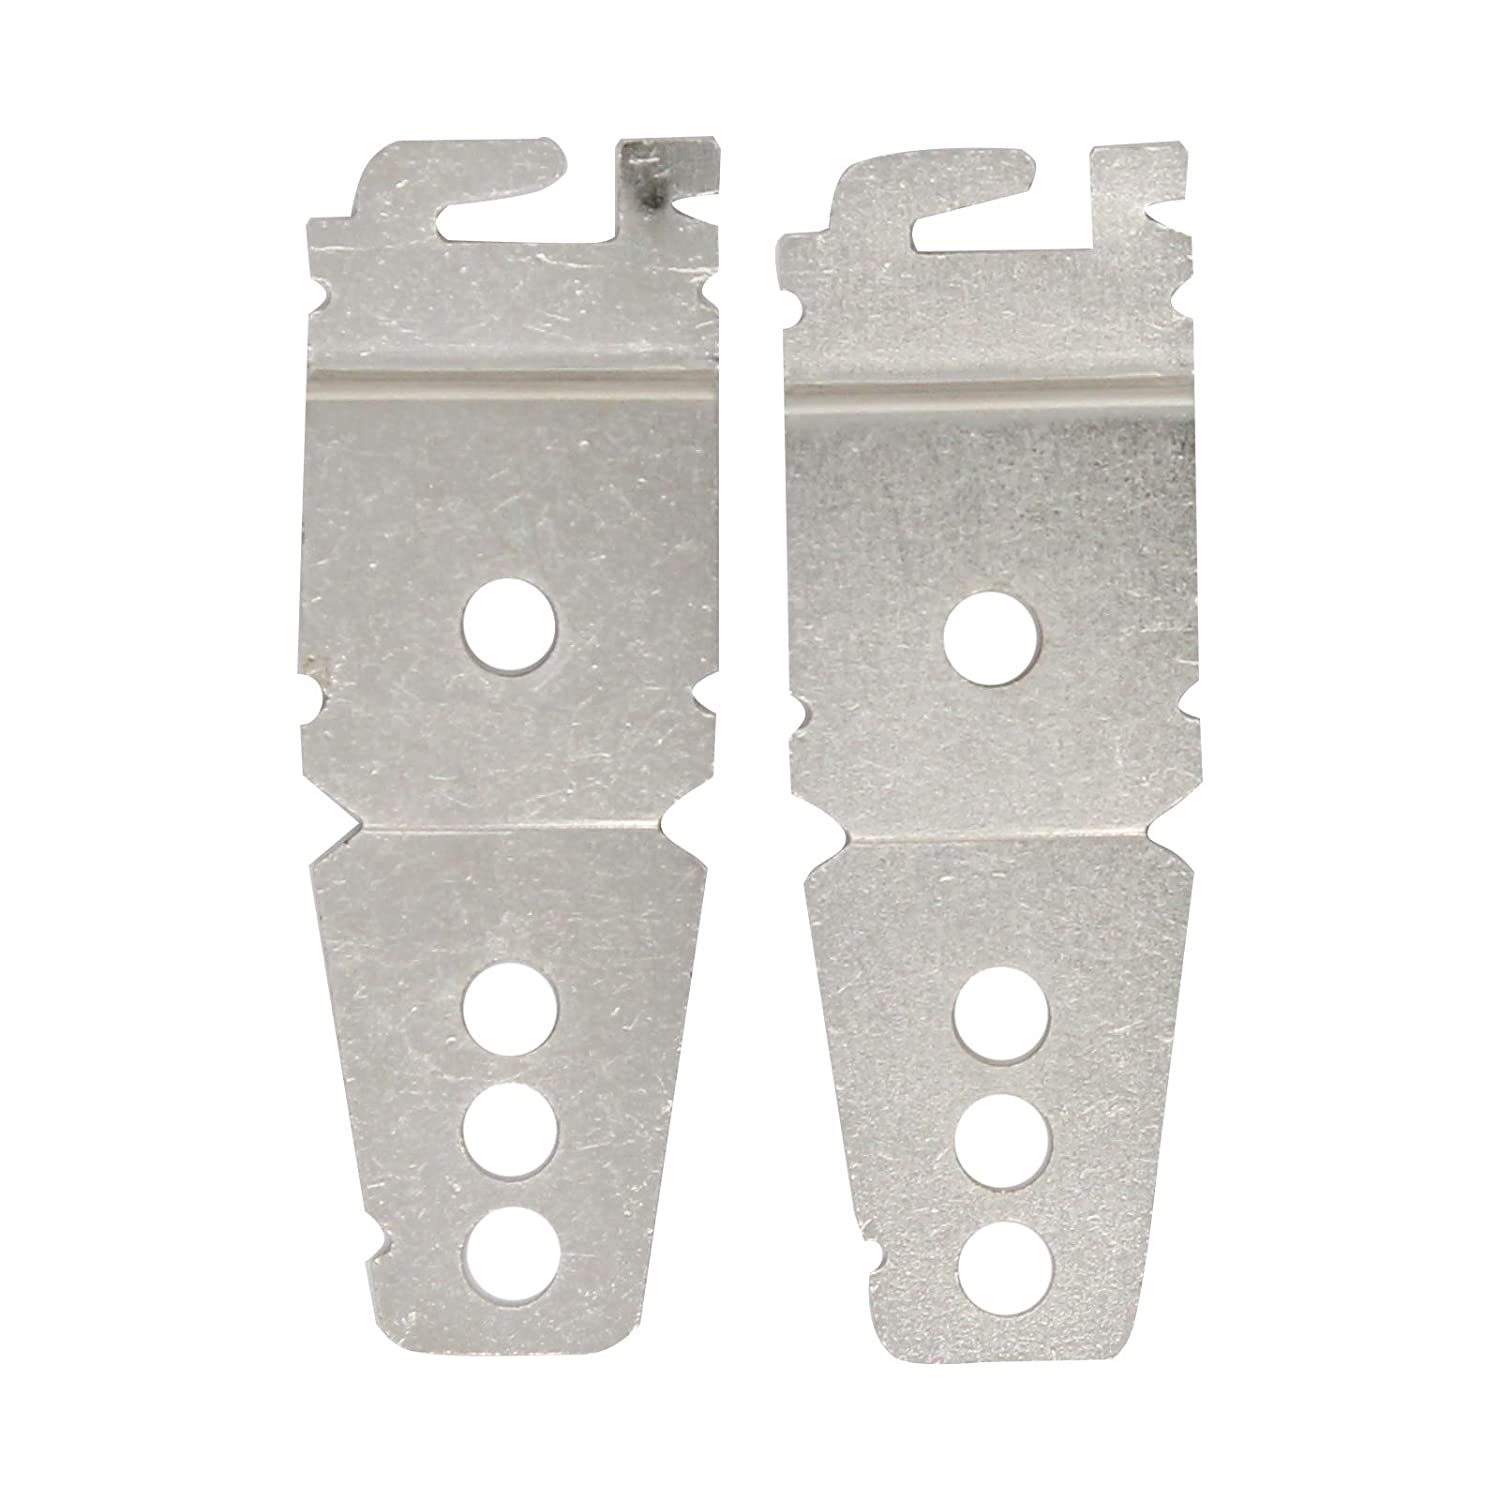 Compatible with WP8269145 & 8212560 Undercounter Dishwasher ...